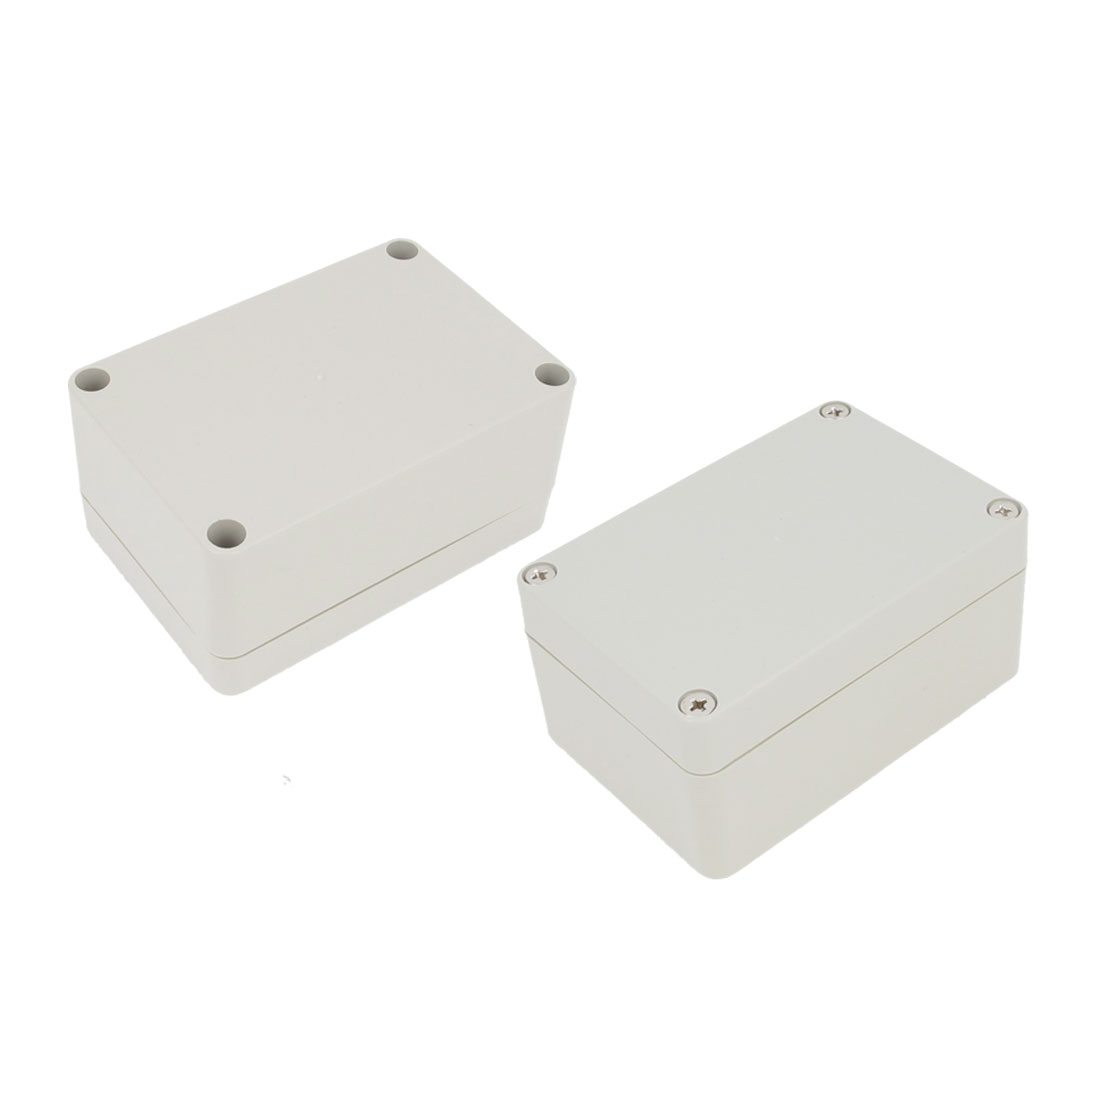 2 Pcs Plastic Mounted Power Protective Case Junction Box 98 x 67 x 49mm